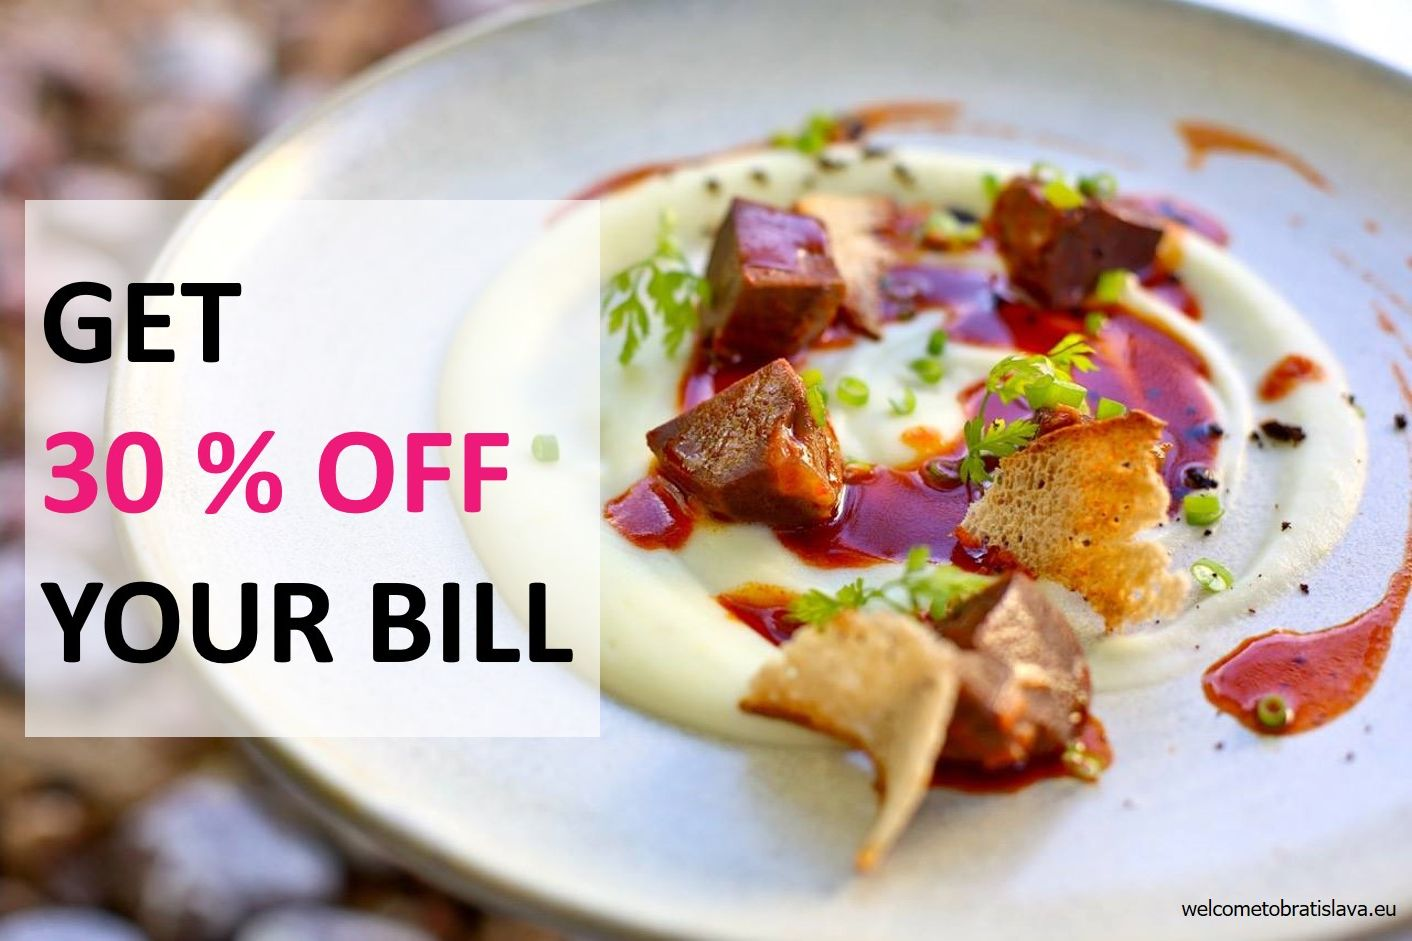 get 30 percent off your bill_welcometobratislava